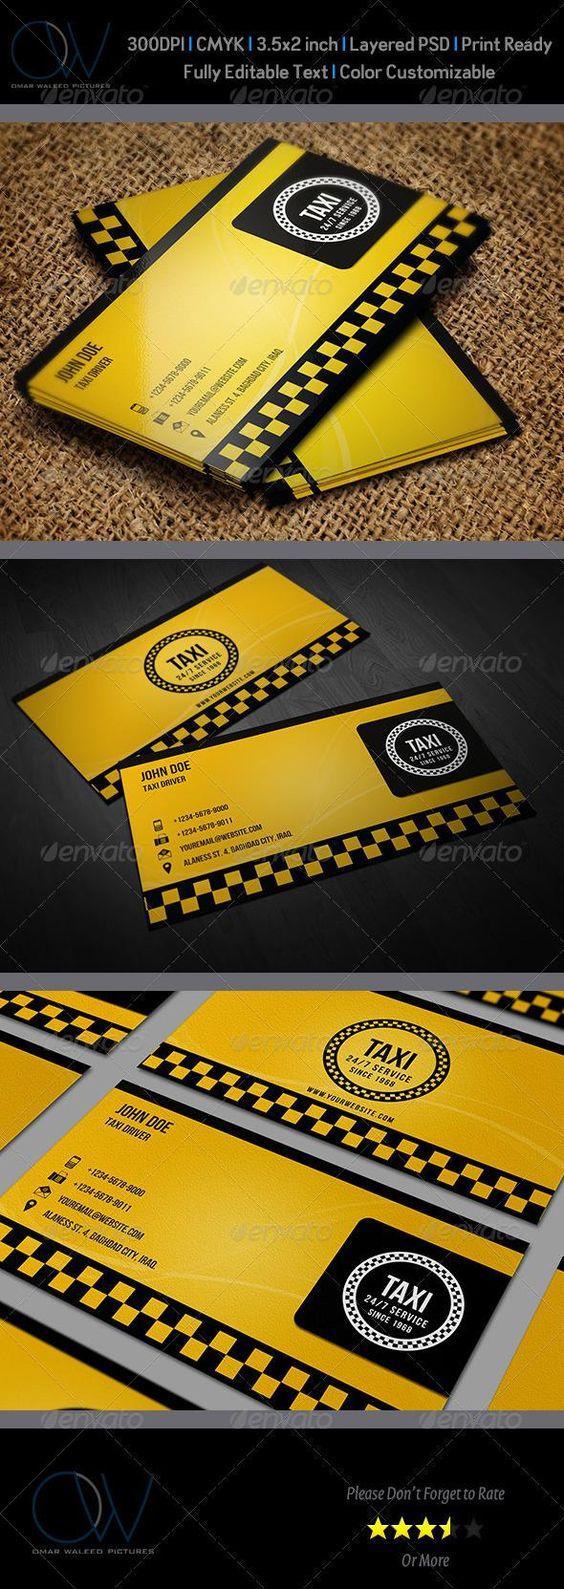 Taxi Business Card | Business cards, Business and Cards